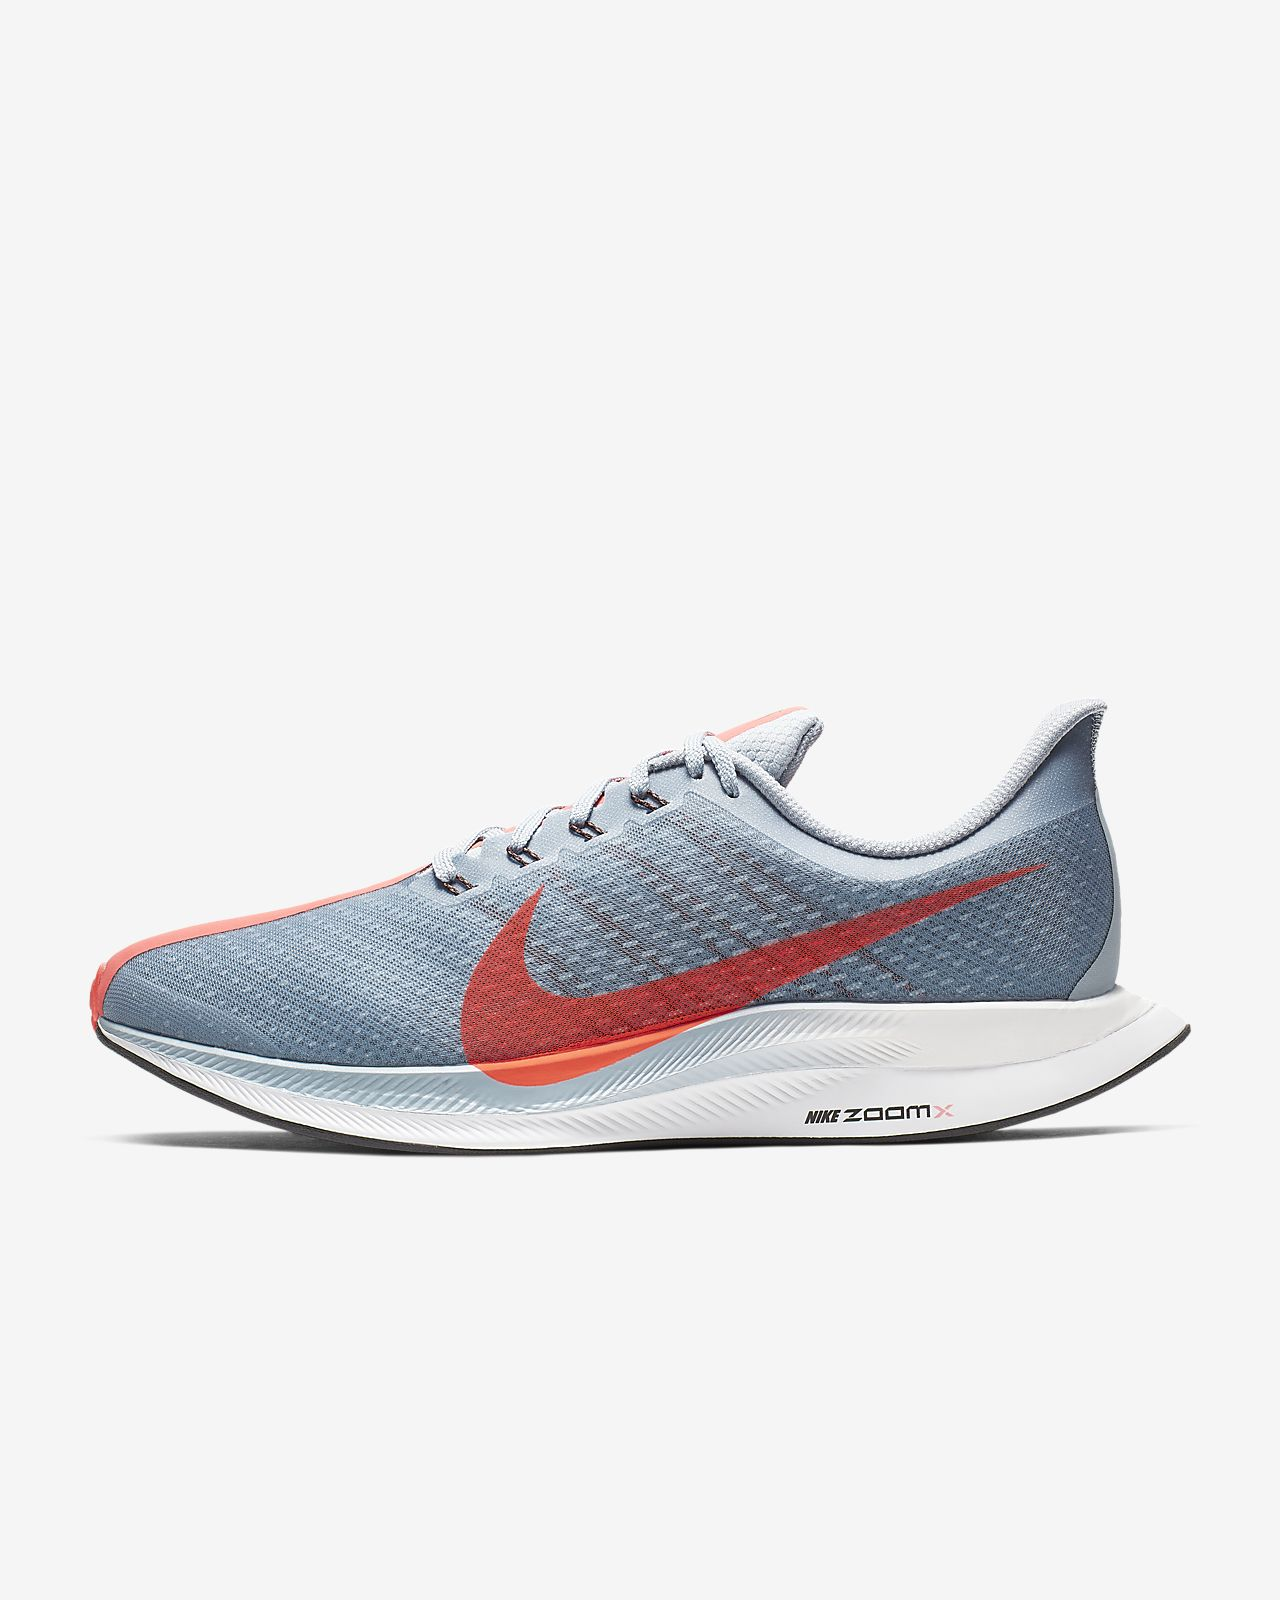 a78da5a8edeee Nike Zoom Pegasus Turbo Men s Running Shoe. Nike.com AU